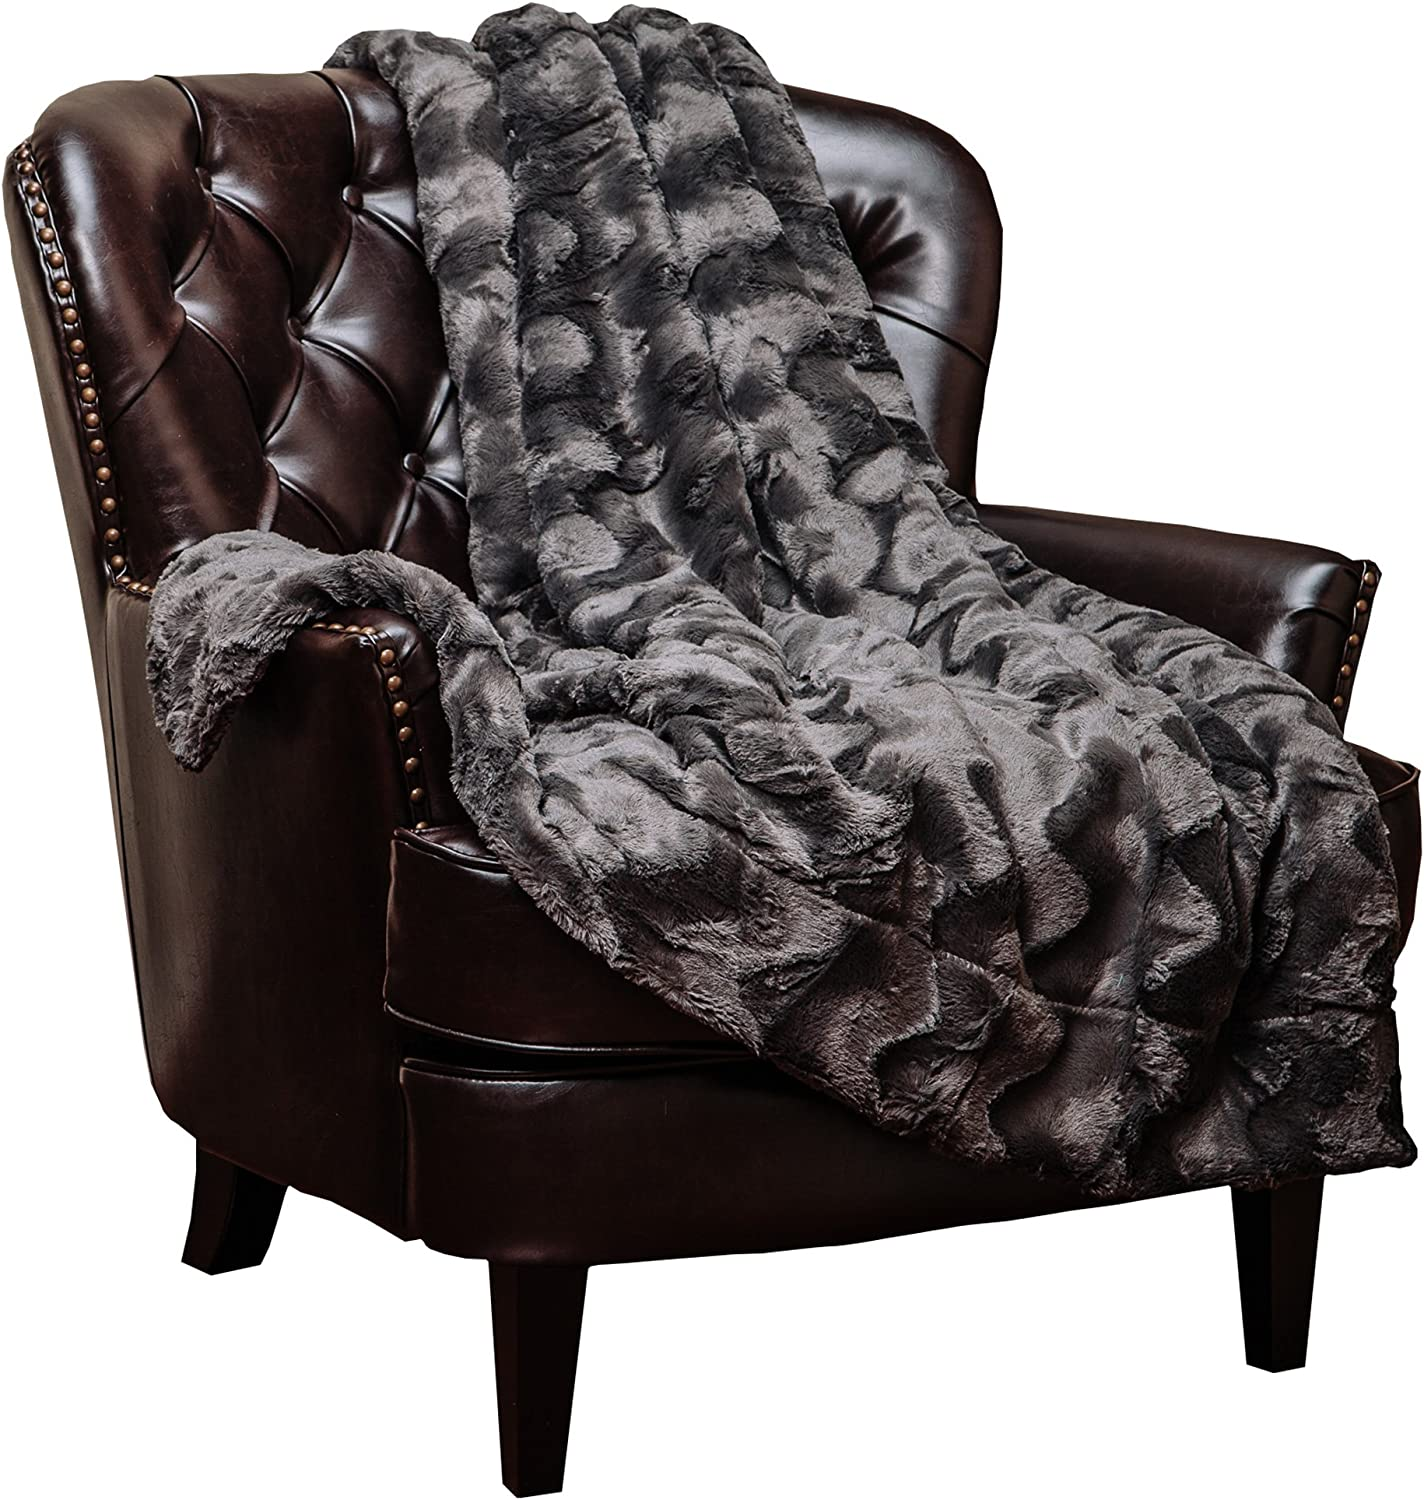 "Chanasya Fur Throw Blanket for Bed Couch Chair Daybed - Soft Wave Embossed Pattern - Warm Elegant Fuzzy Fluffy Faux Fur Plush Suitable for Fall Winter Summer Spring (50"" x 65"") - Dark Grey Blanket"